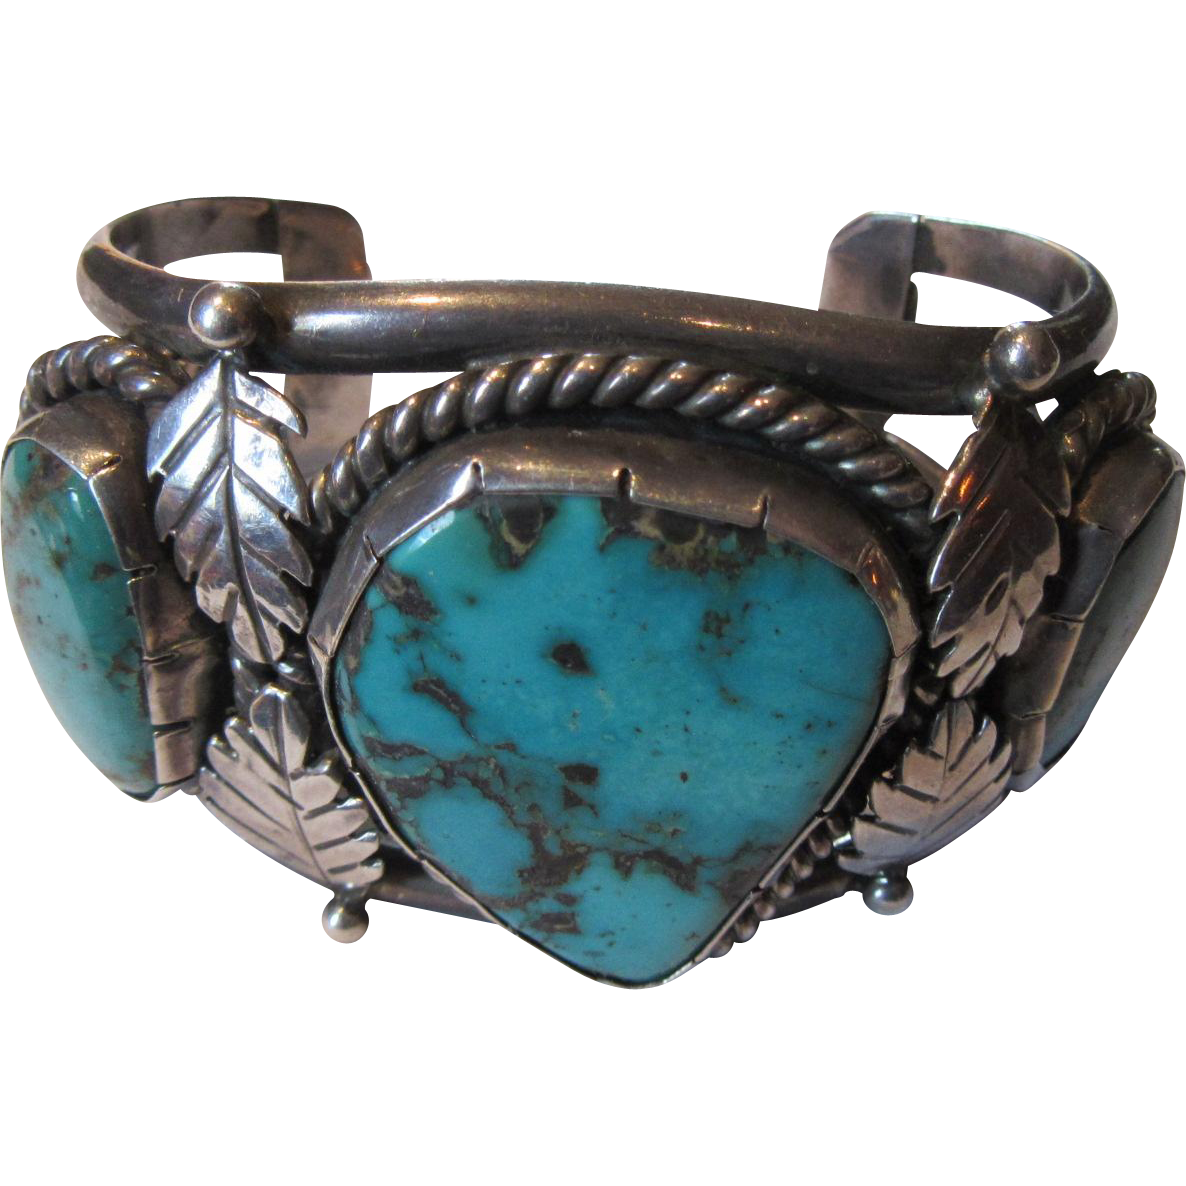 Large Vintage Native American Silver Turquoise Ornate Bracelet Signed